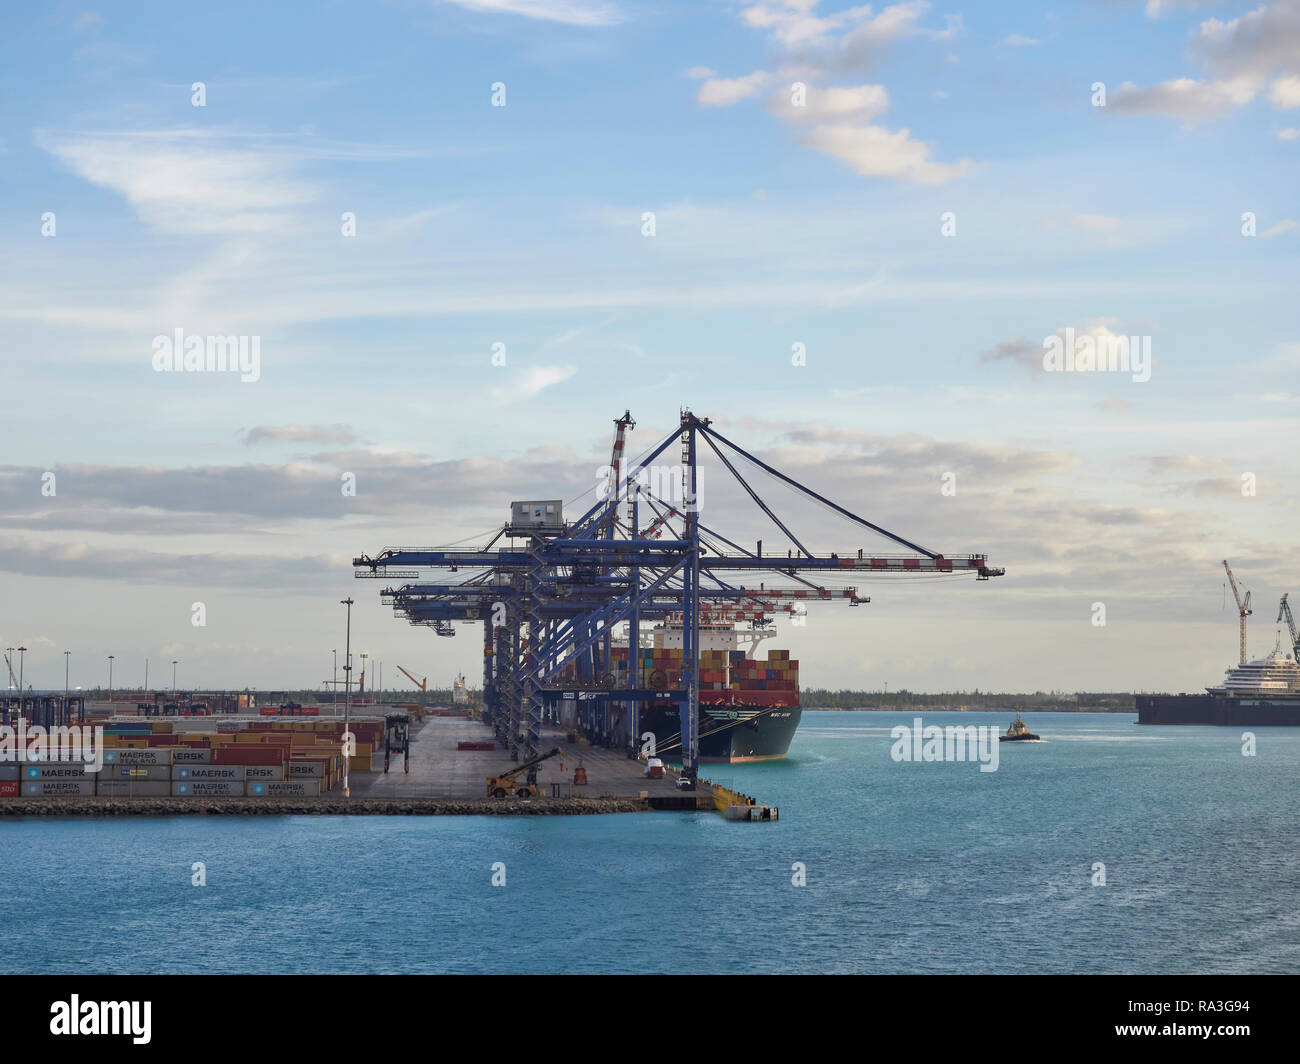 The Container Terminal at Freeport in the Bahamas, with a Container shipped berthed alongside on one early November Morning. - Stock Image